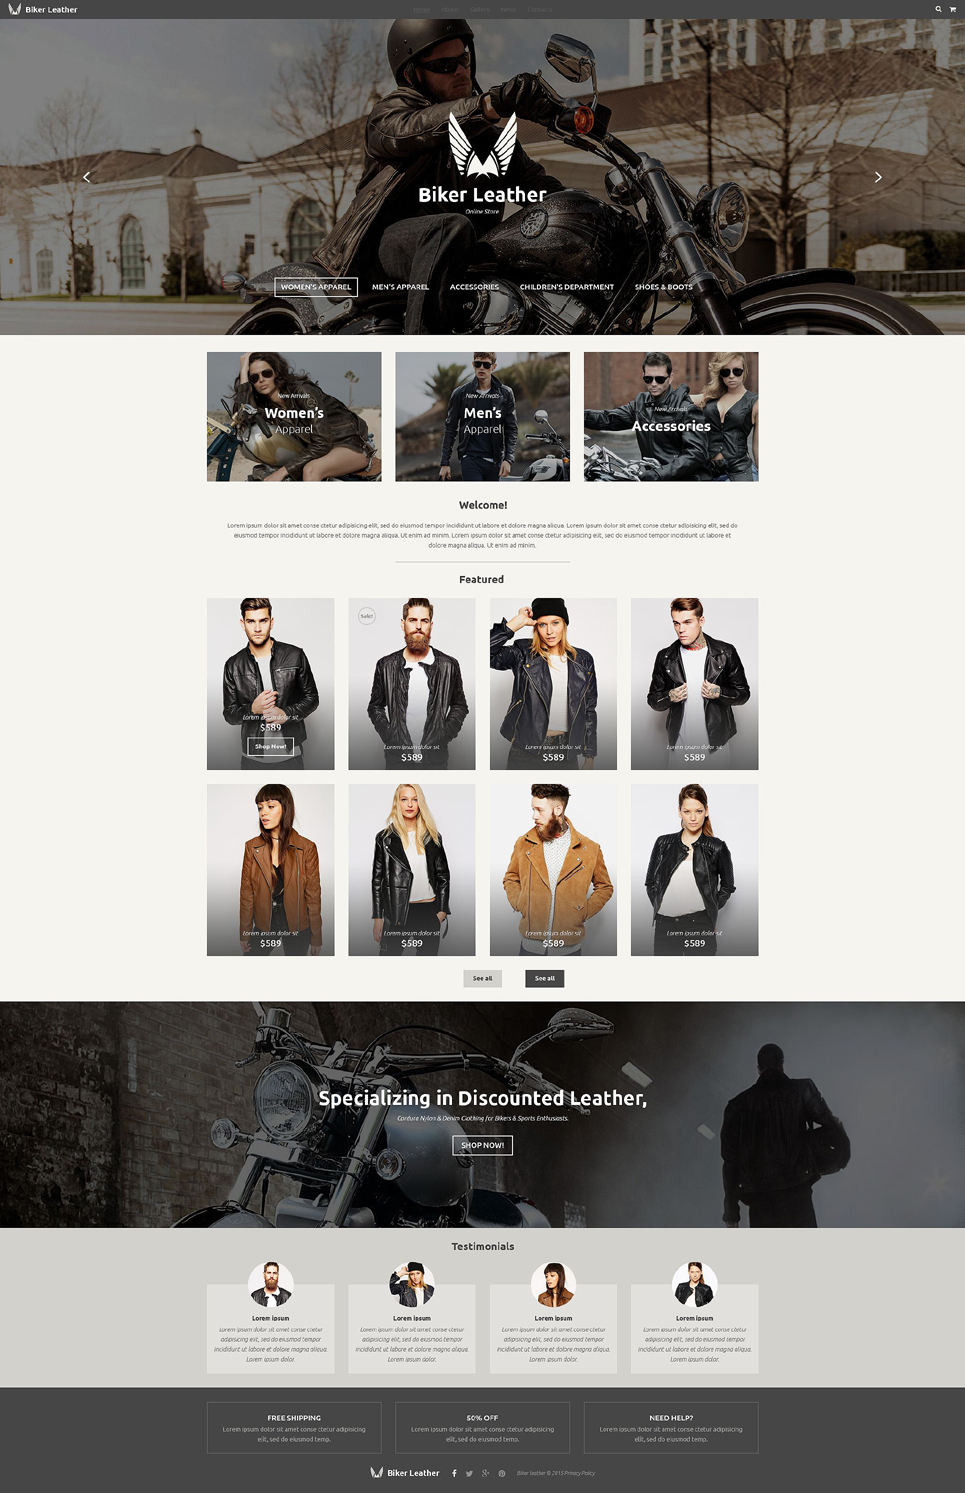 Leather Apparel Store template illustration image